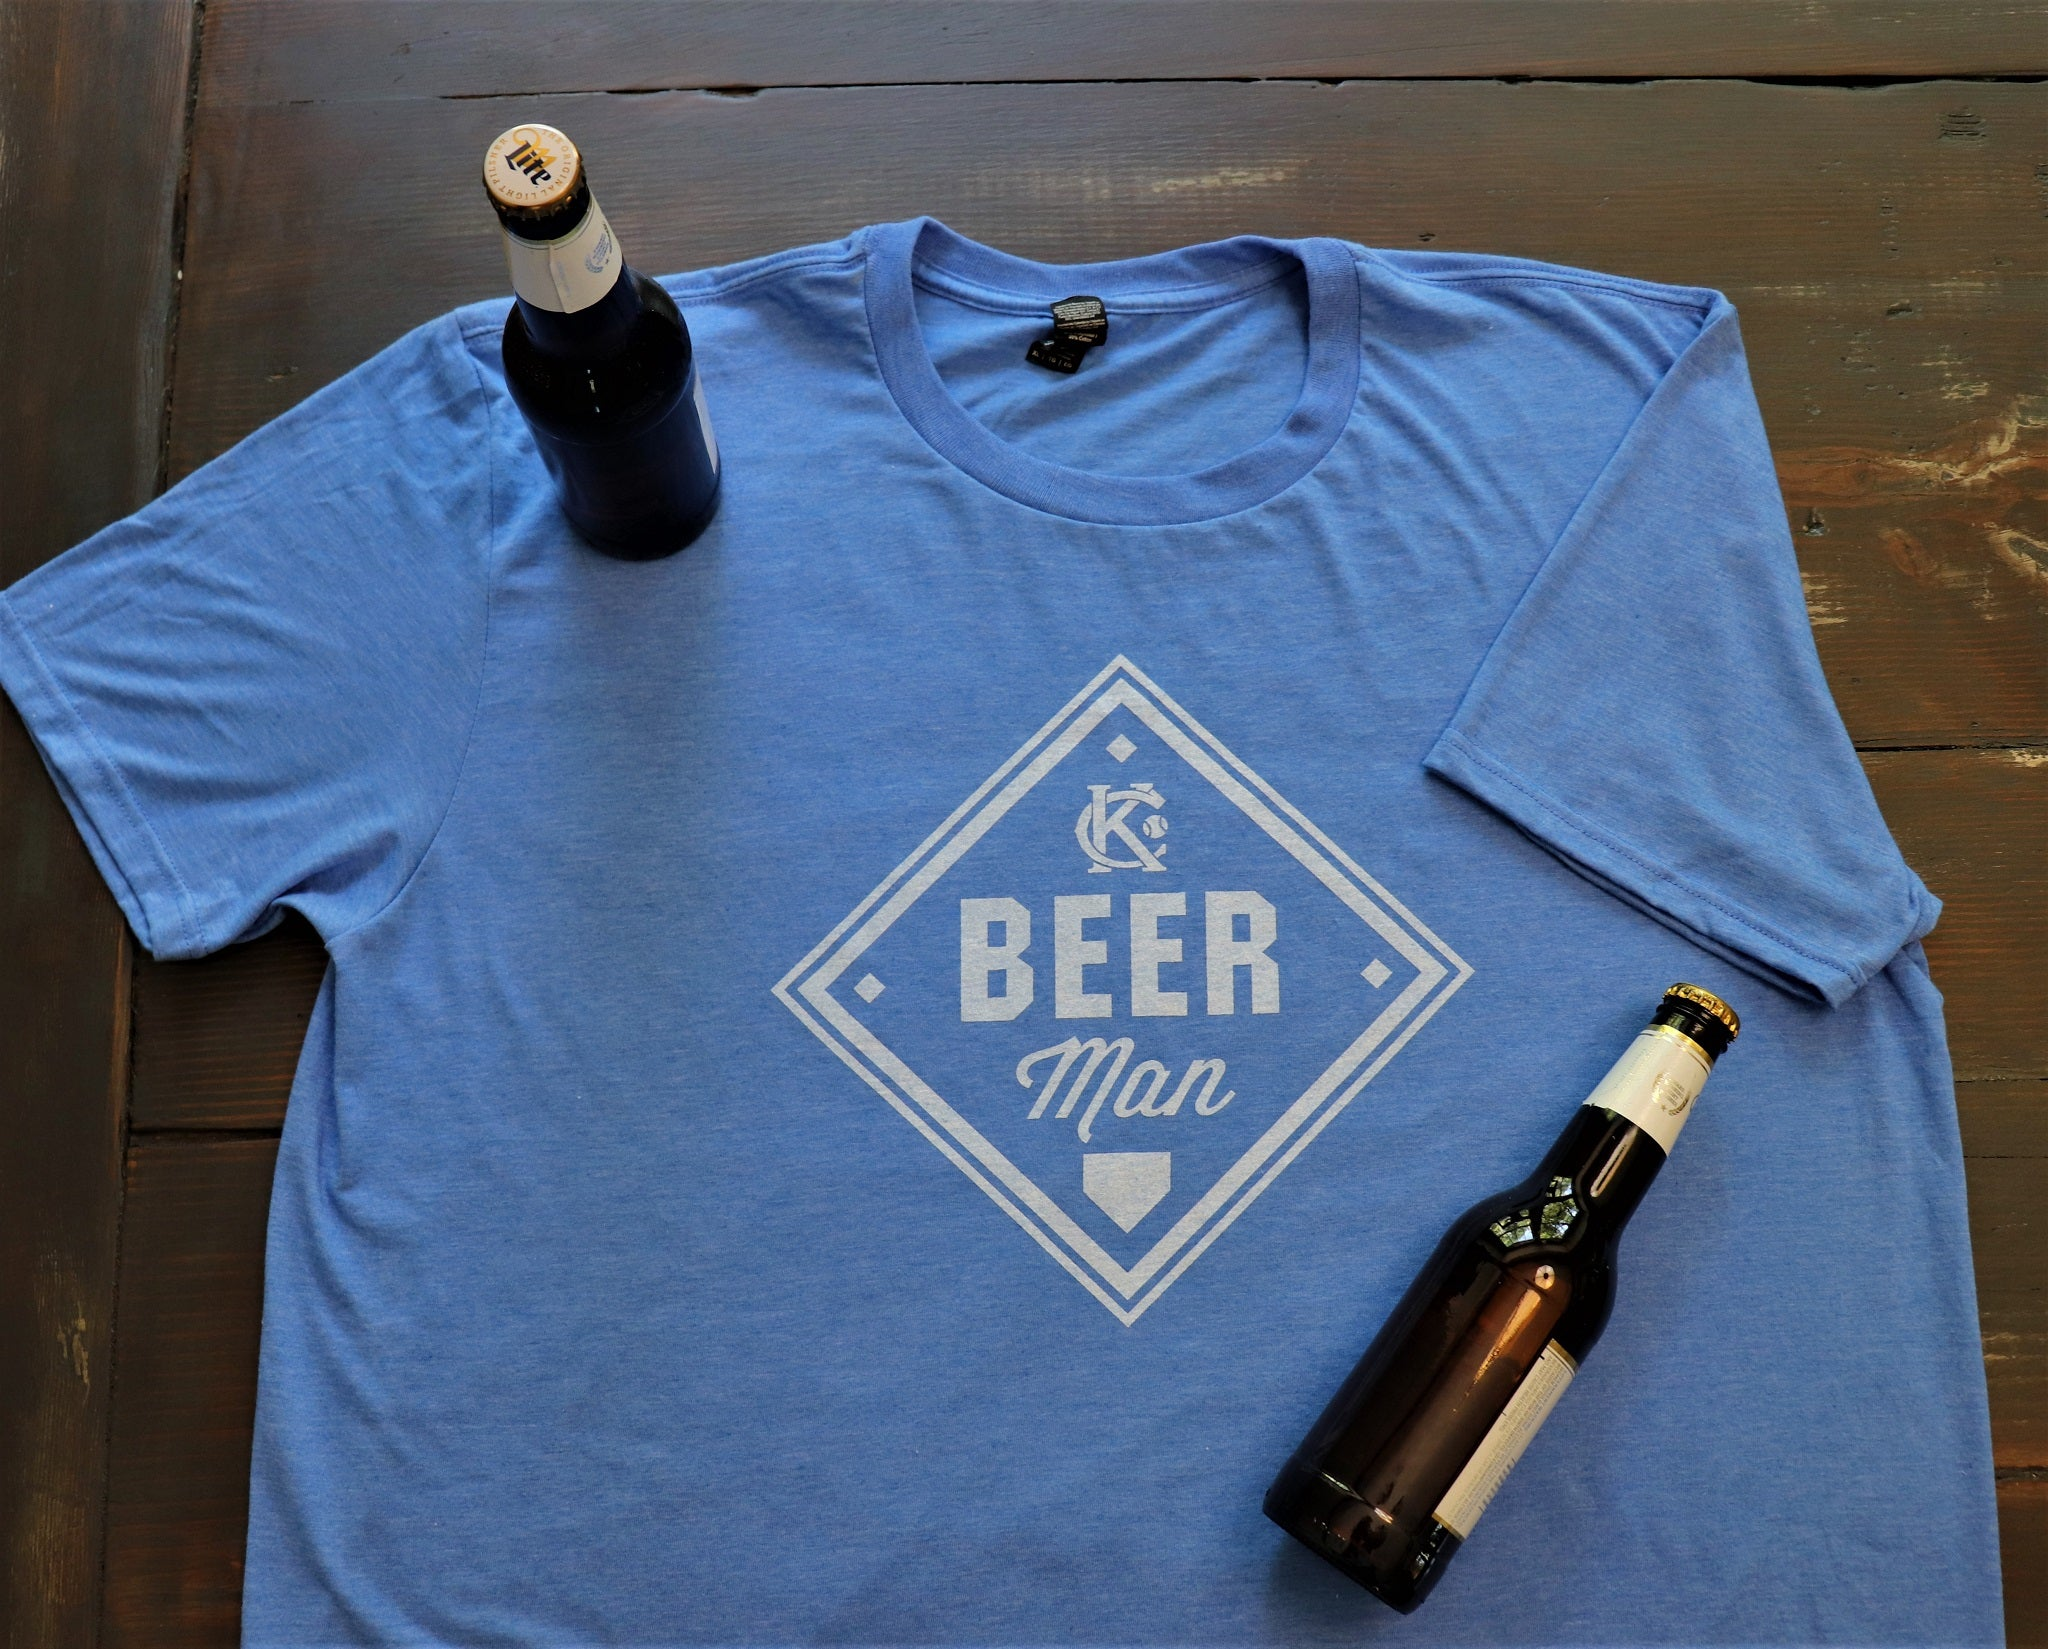 KC BEER MAN! - KC Shirts